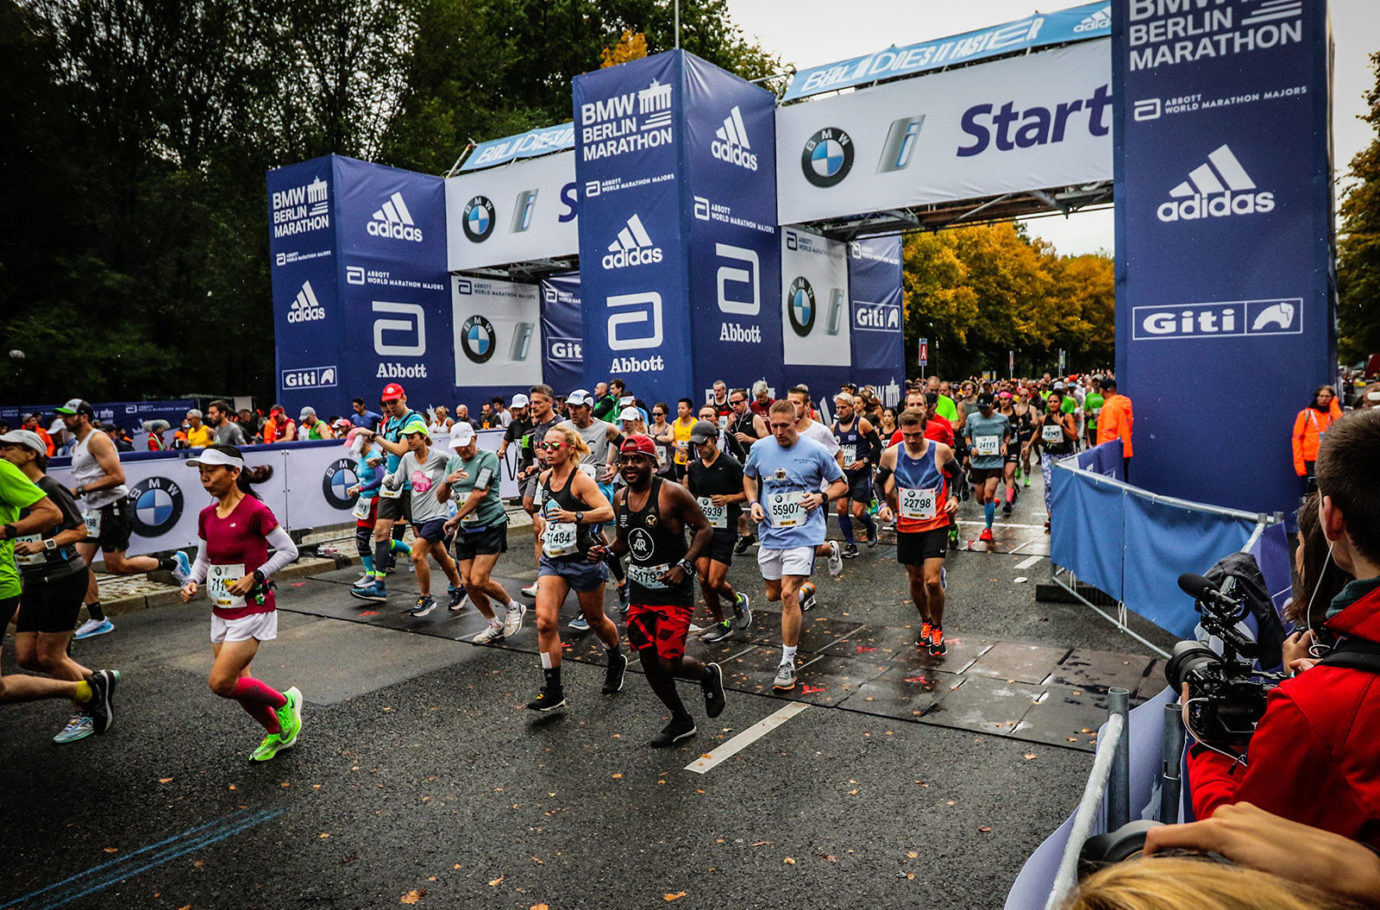 Berlin Marathon review: Start line